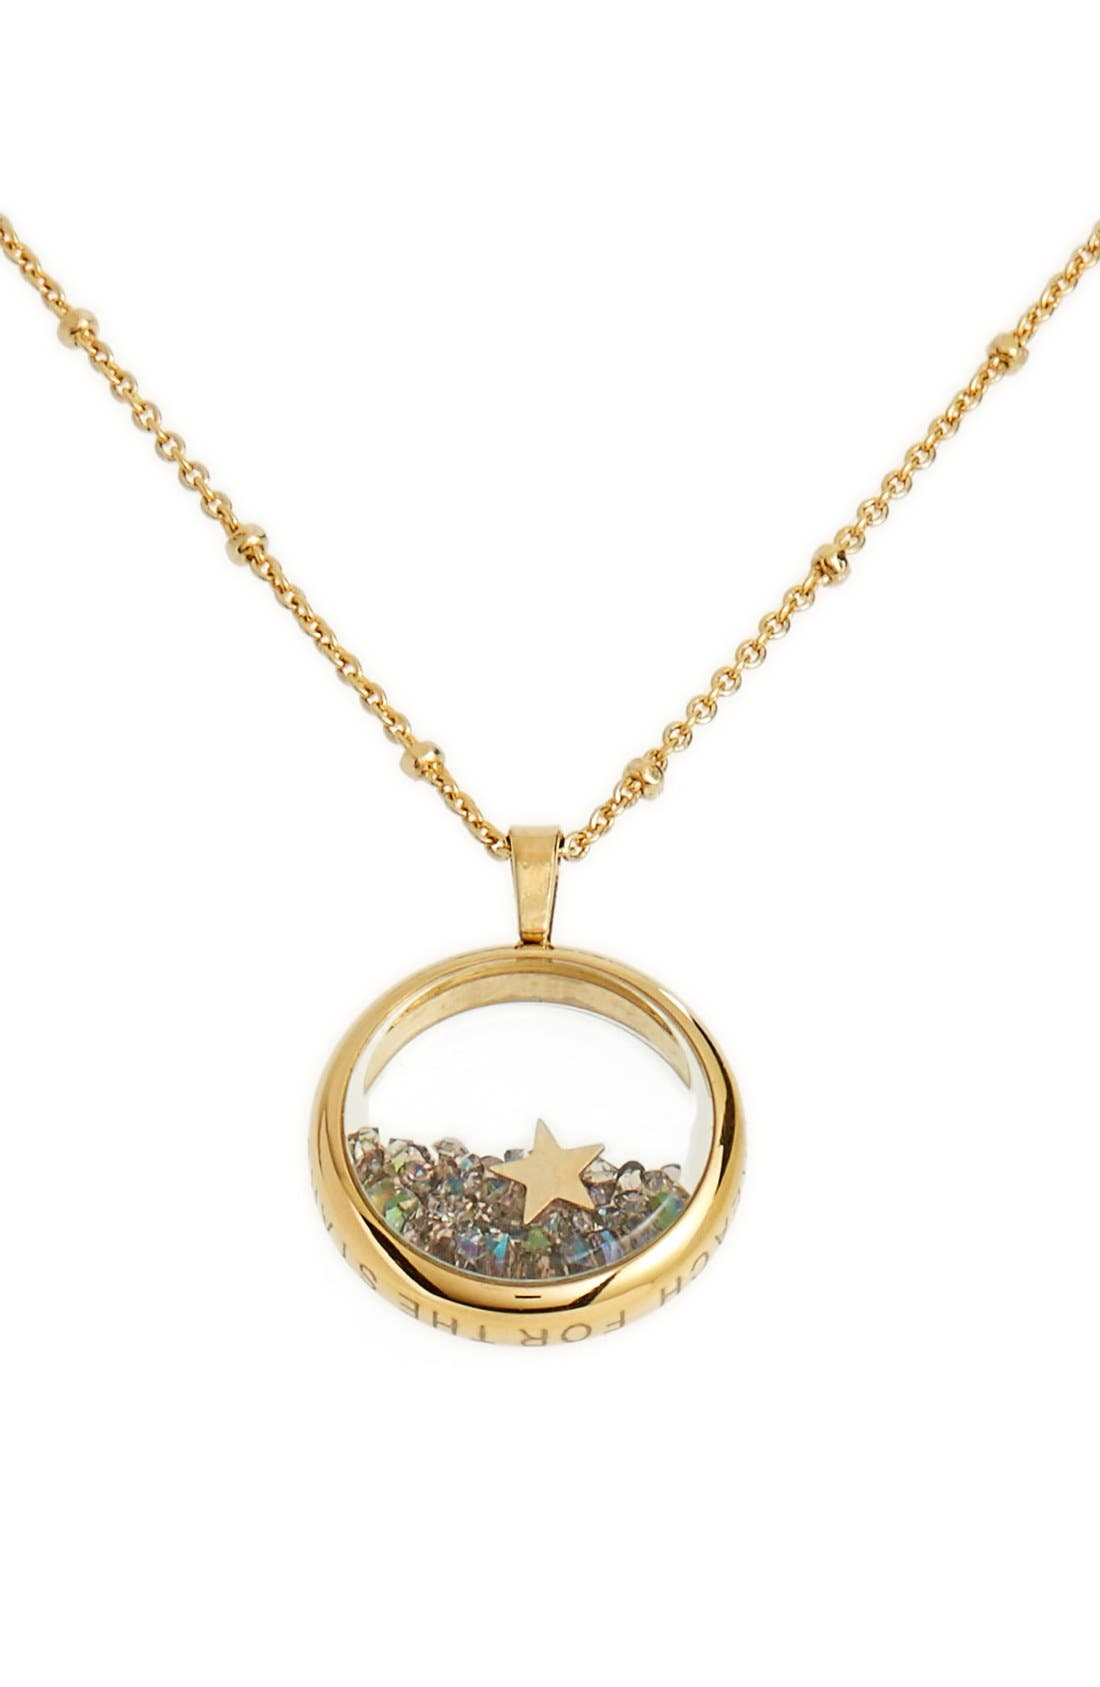 Alternate Image 1 Selected - kate spade new york 'reach for the stars' pendant necklace